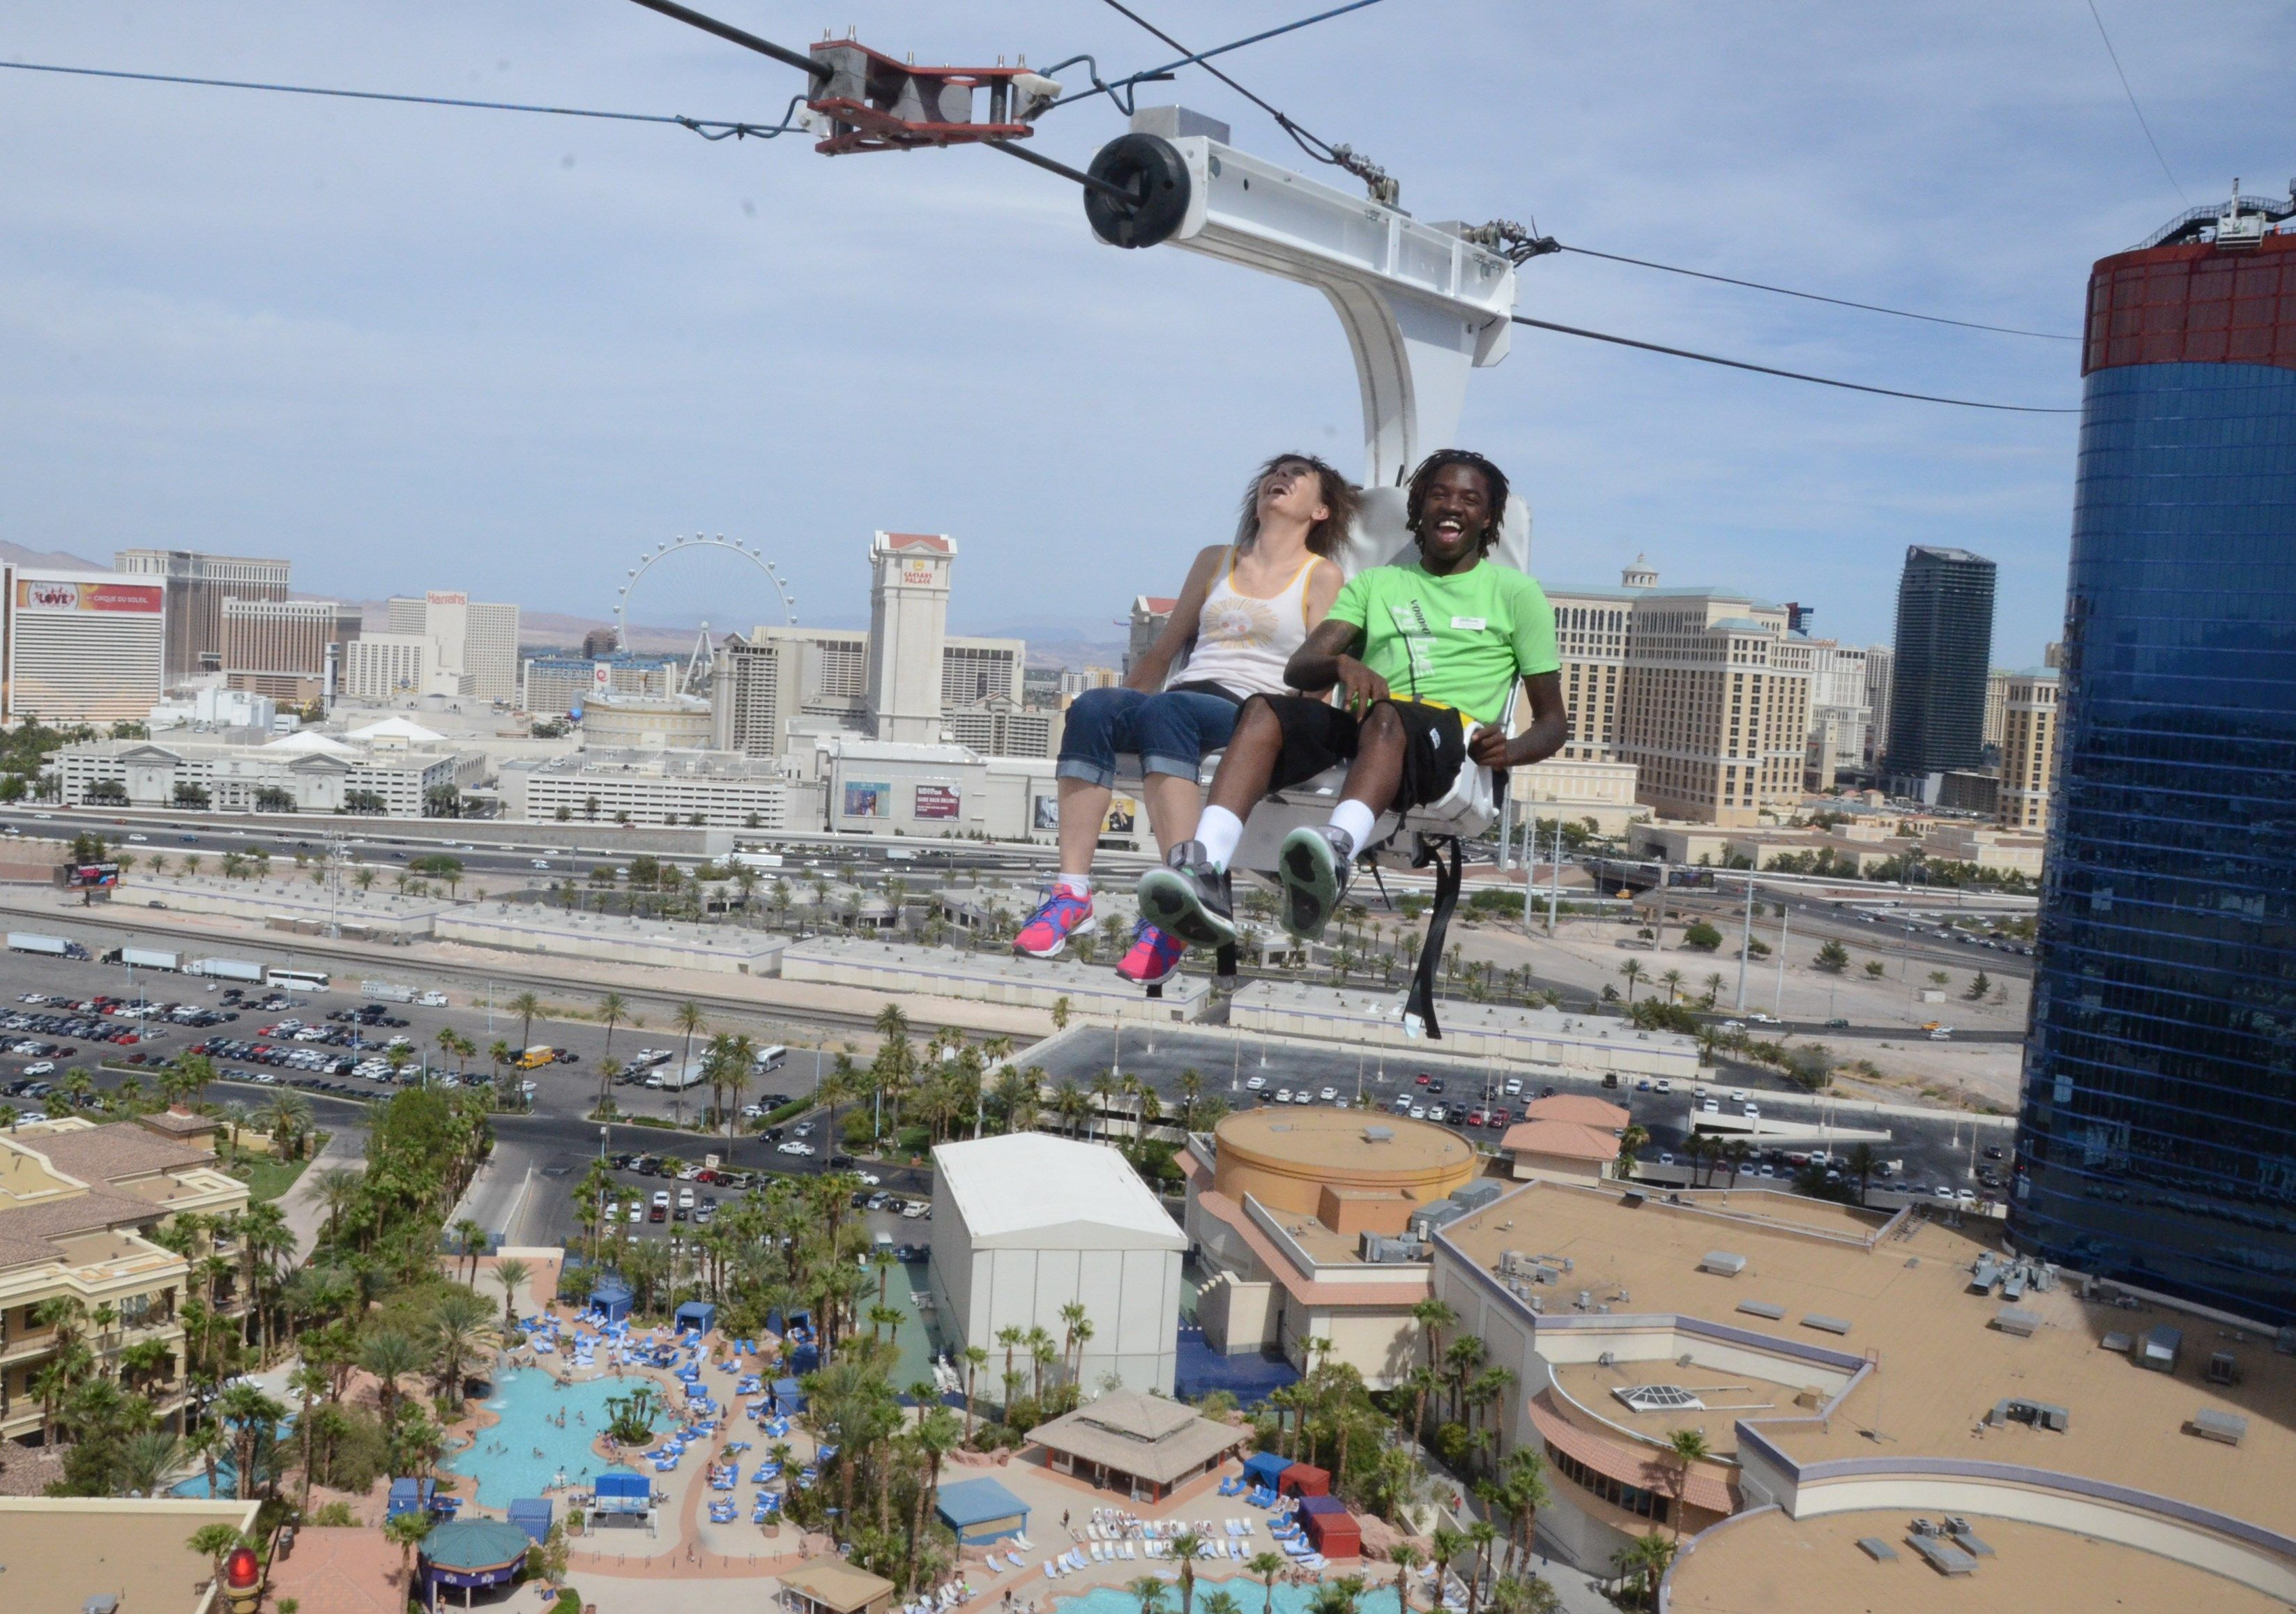 Las Vegas P Now Includes A Ride On The Voodoo Zip Line Between 2 Towers Of Rio